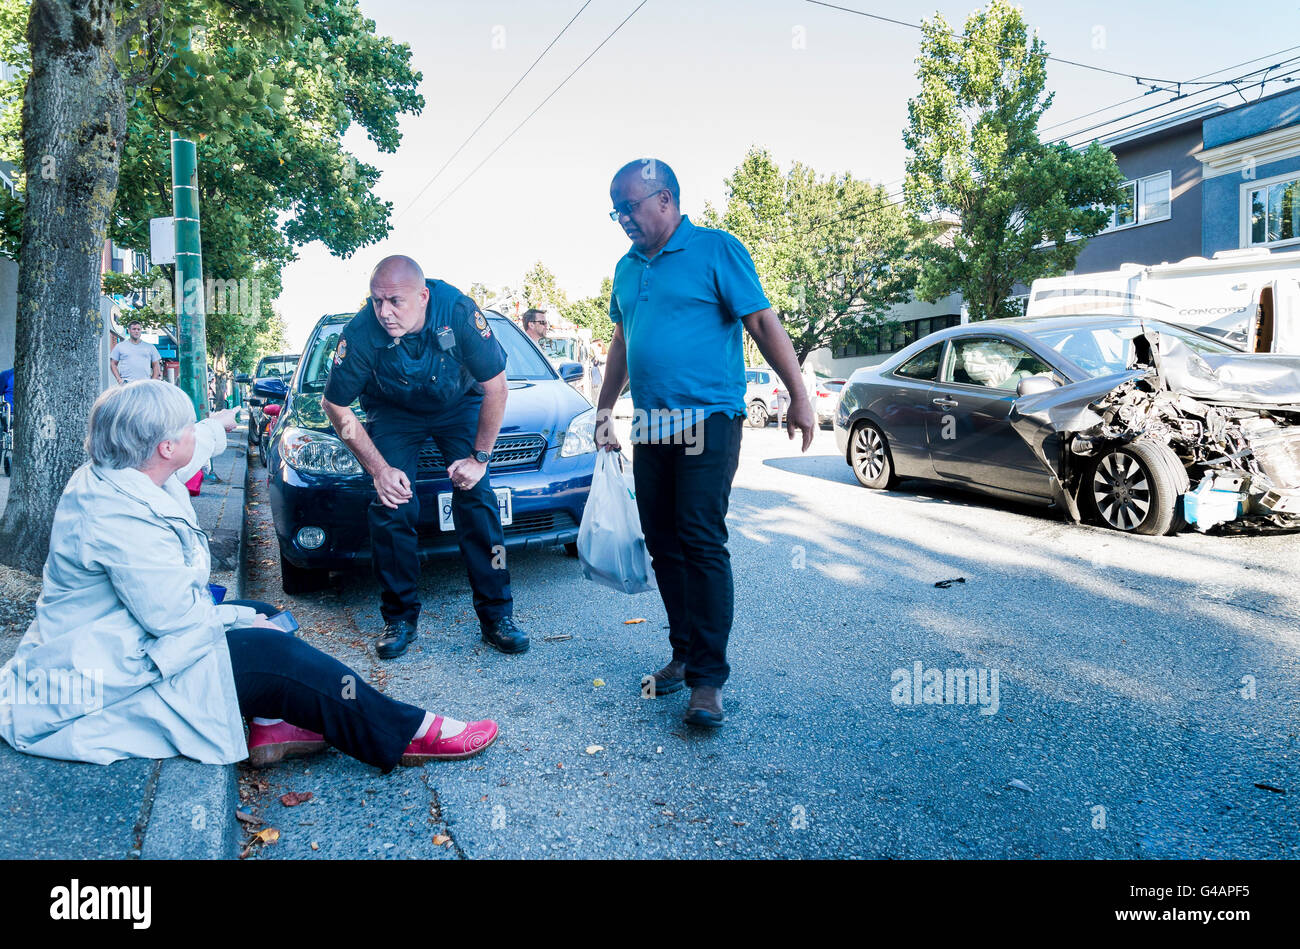 Woman survives head on collision and is questioned by Police Officer. Vancouver, British Columbia, Canada, - Stock Image